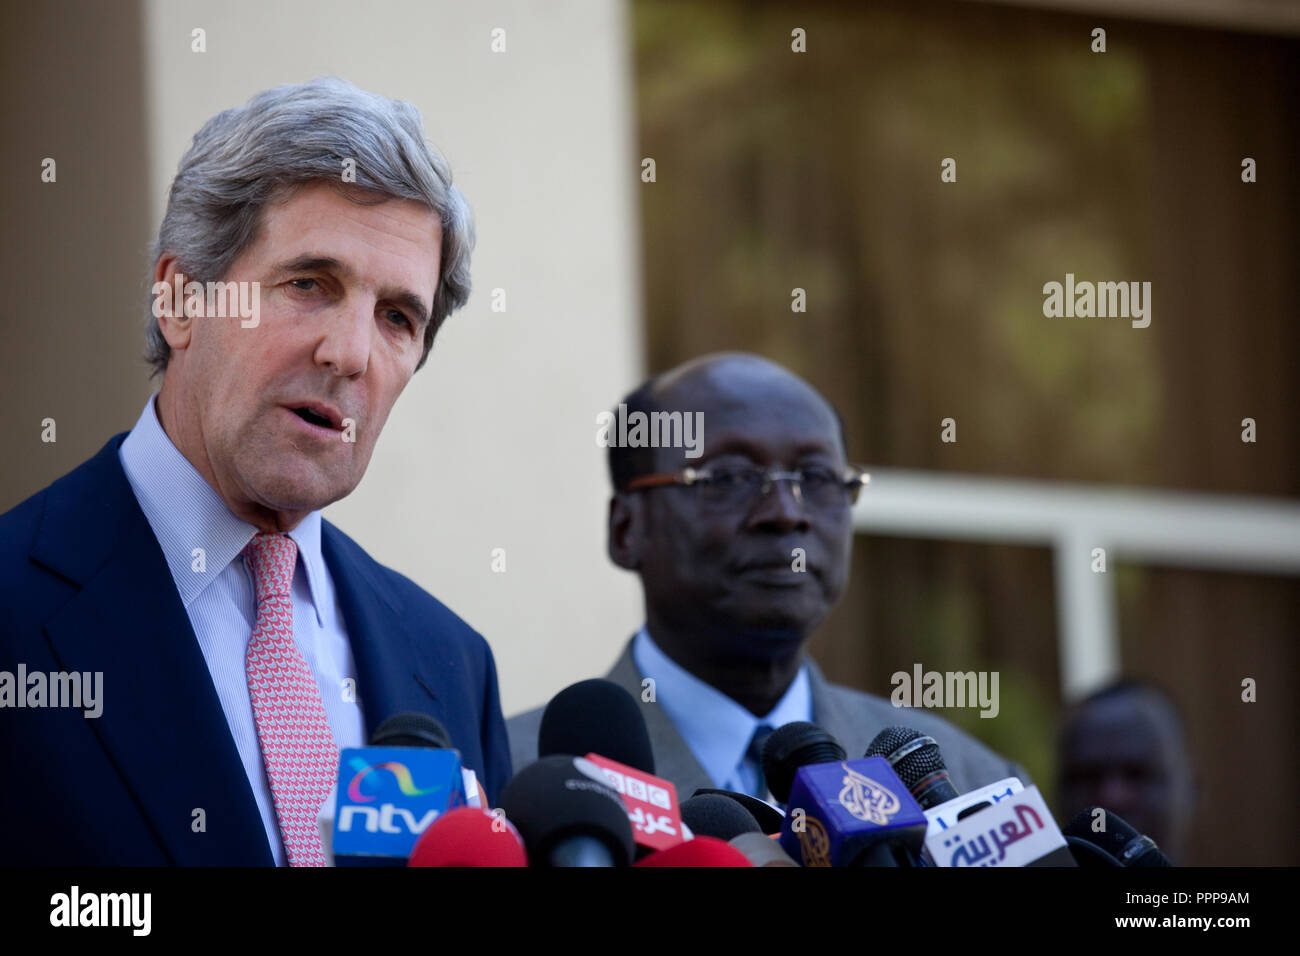 January 8, 2011 - Juba, Sudan - U.S. Senator John Kerry speaks to reporters following his meeting with Southern Sudan President Salva Kiir in Juba, Southern Sudan. Southern Sudan begins voting in a weeklong independence referendum Sunday that is likely to see Africa's largest country split in two. In order for the referendum to pass, a simple majority must vote for independence and 60 percent of the 3.9 million registered voters must cast ballots. Photo credit: Benedicte Desrus Stock Photo